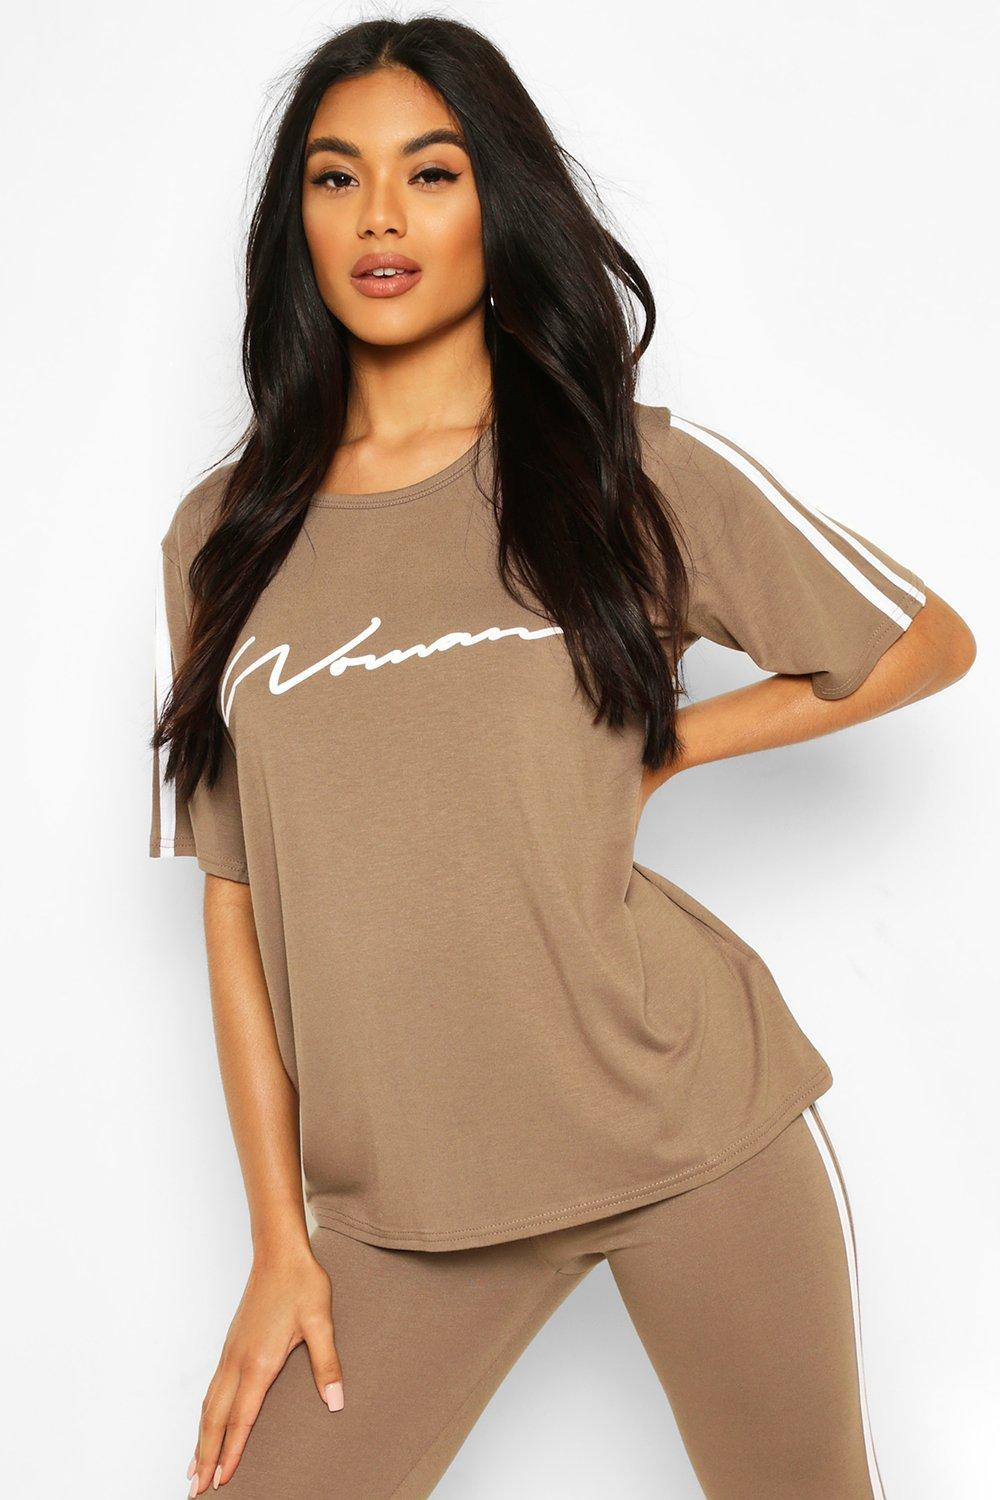 boohoo Womens Side Stripe Woman T-Shirt - Beige - 14, Beige